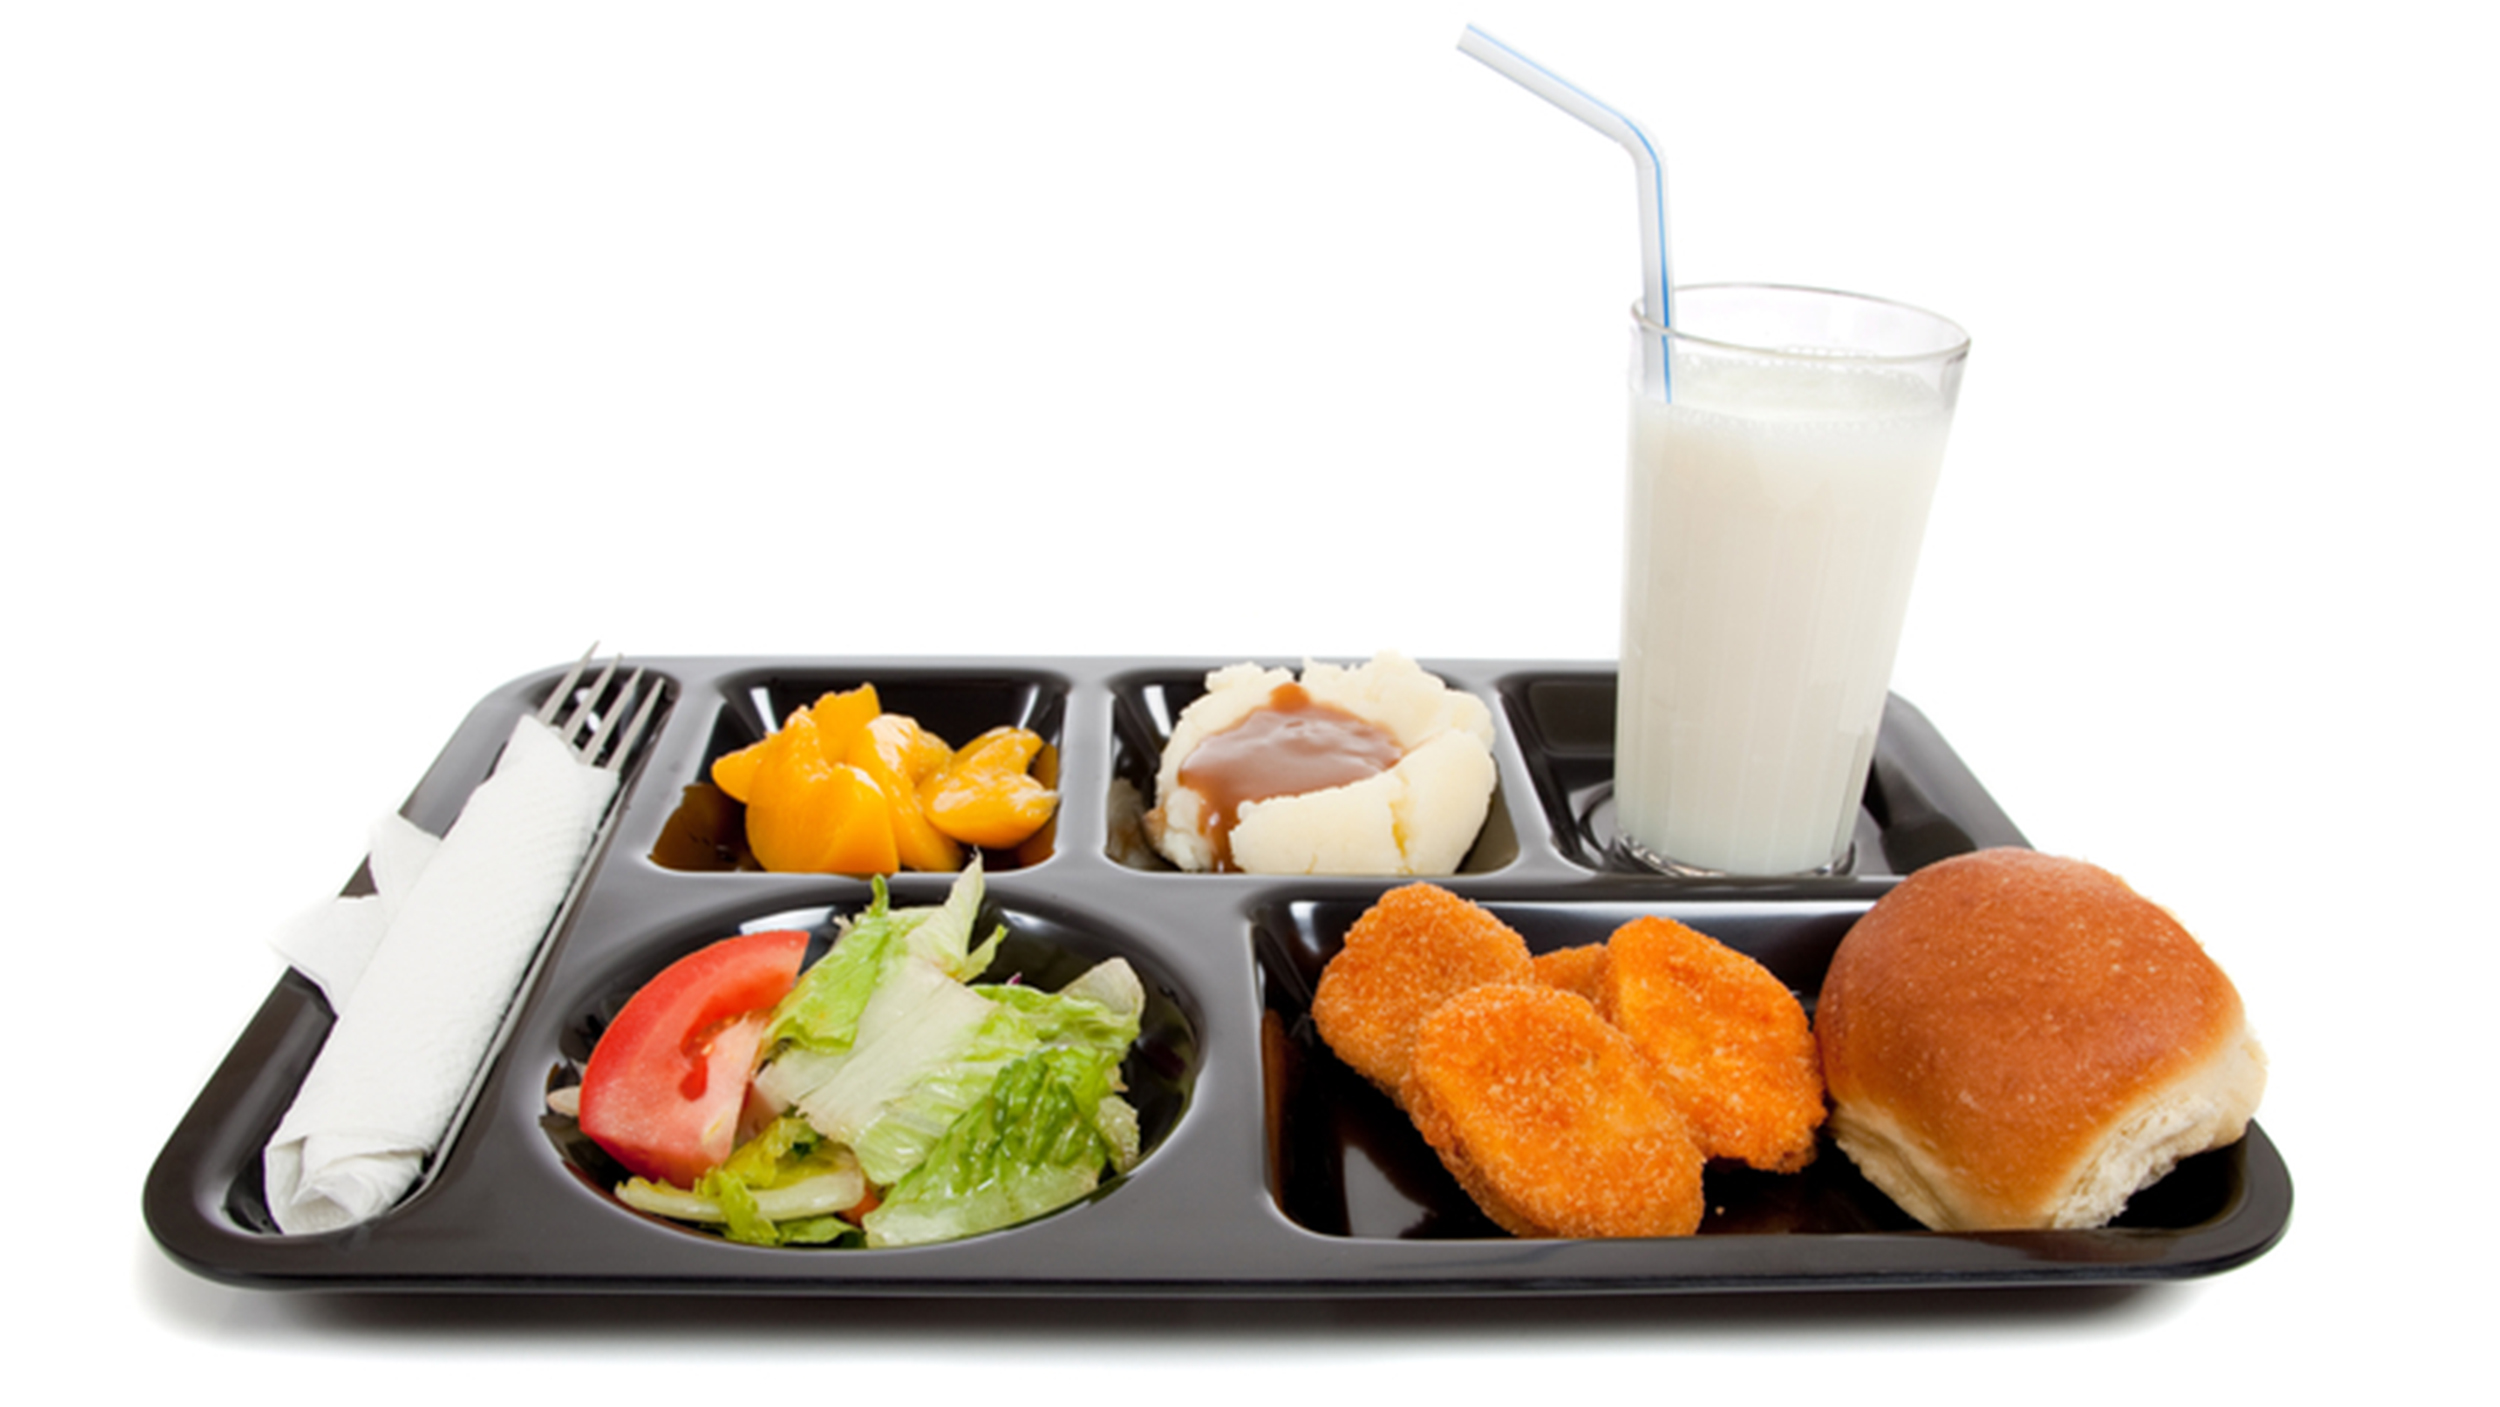 Vegetables hit school lunch trays, but most kids don't ...